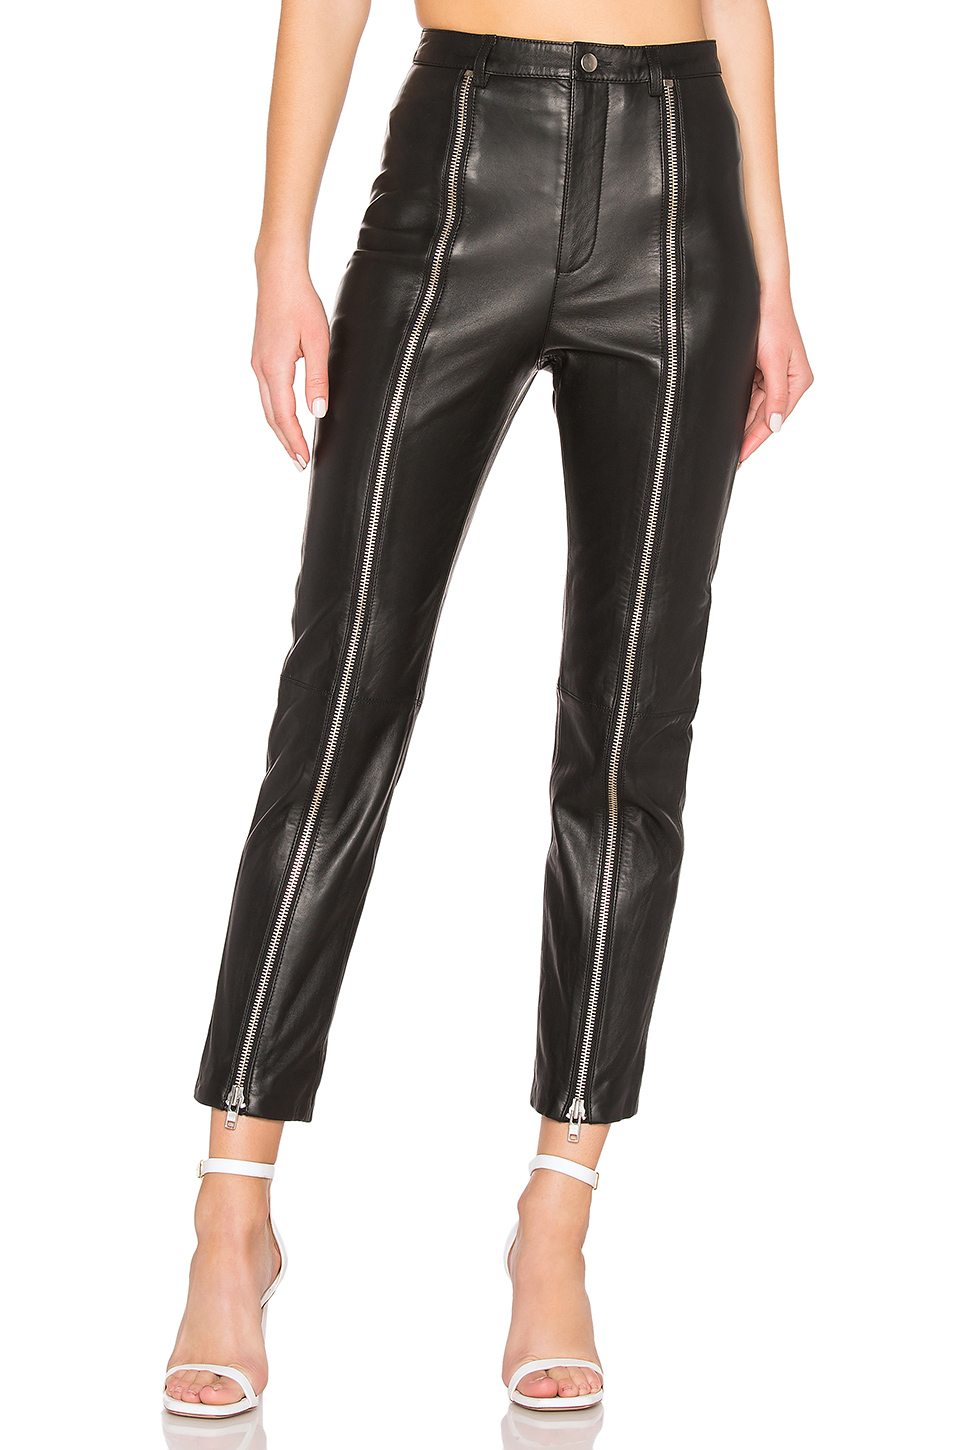 Zip Up Pant by LPA, available on revolve.com for $498 Olivia Culpo Pants Exact Product